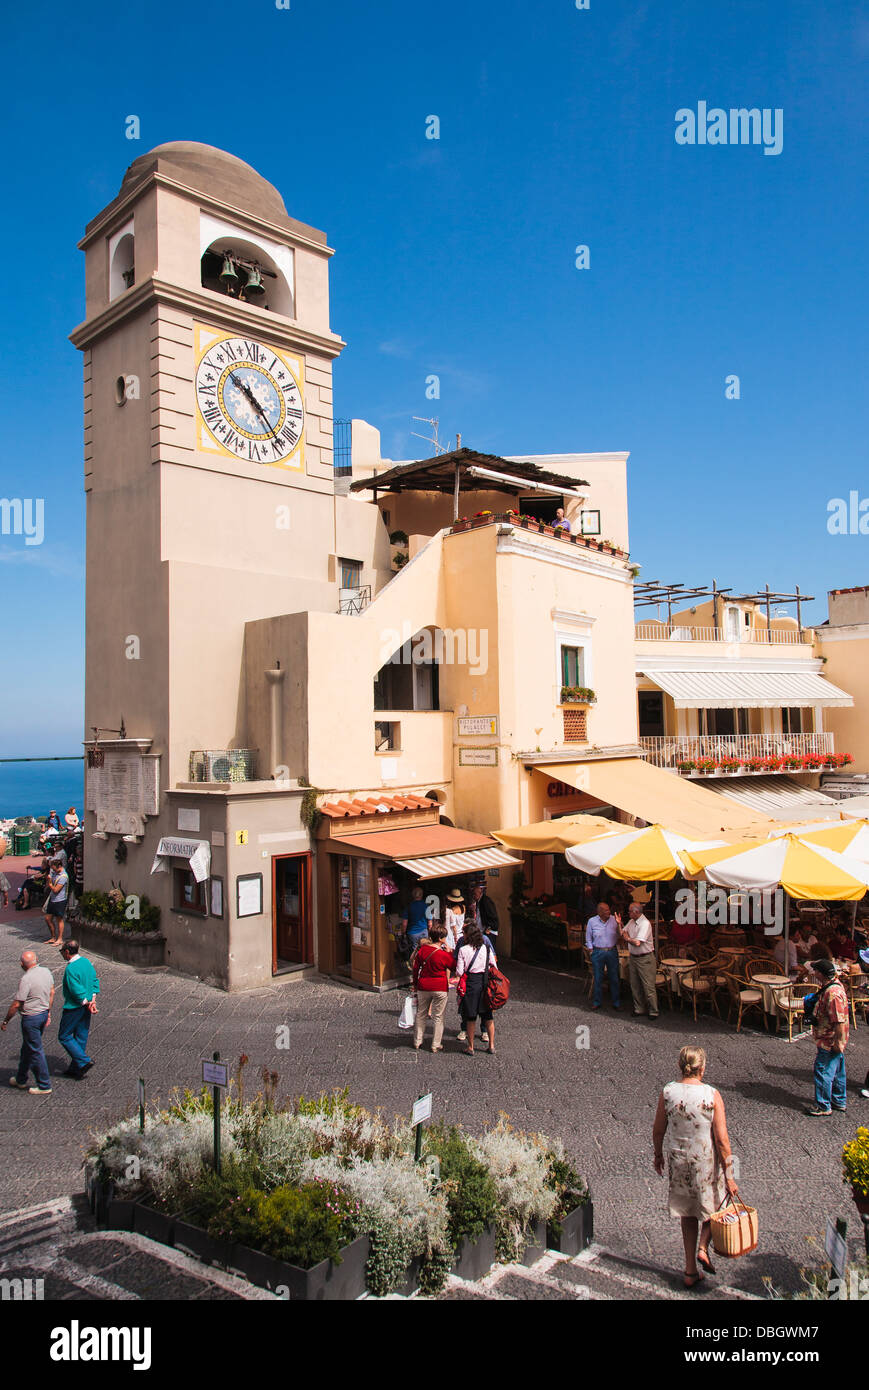 The clock tower in via roma on the island of Capri, Italy. - Stock Image